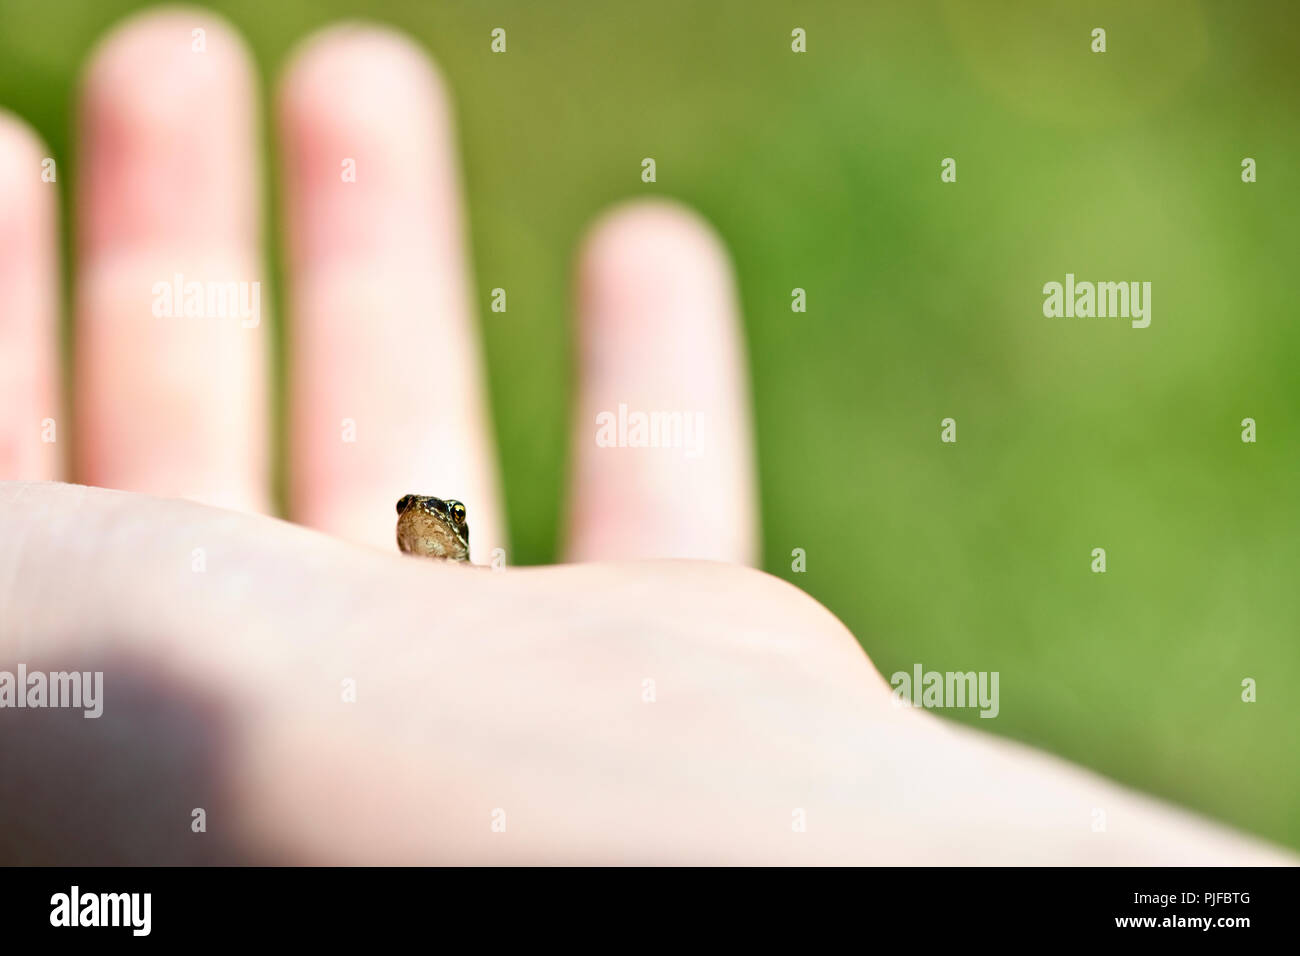 macro  image ,Exploring nature young child holding a very small frog  copy space ideal for a poster  focus of subject blurred background Stock Photo